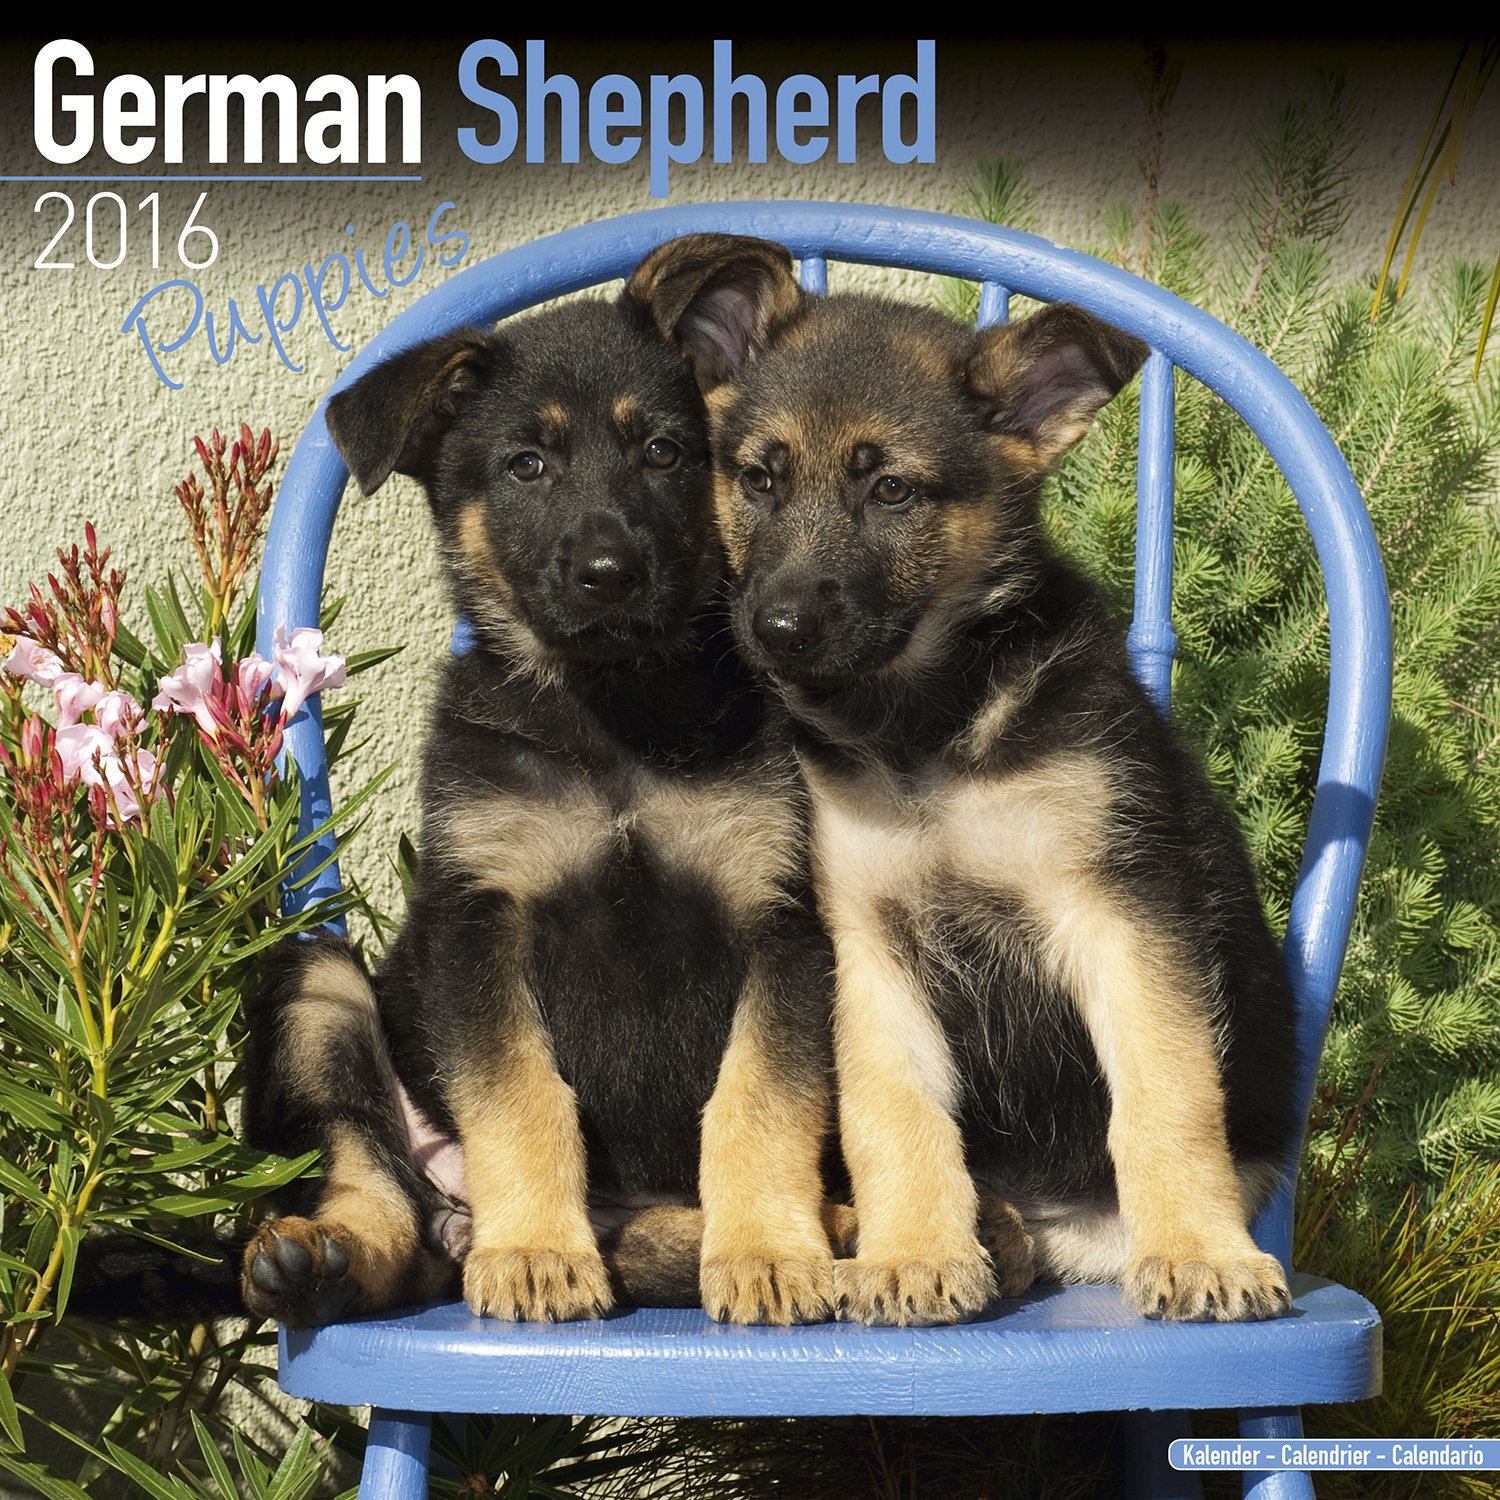 German Shepherd Puppies Calendar - Breed Specific German Shepherd Puppies Calendar - 2016 Wall calendars - Dog Calendars - Monthly Wall Calendar by Avonside pdf epub